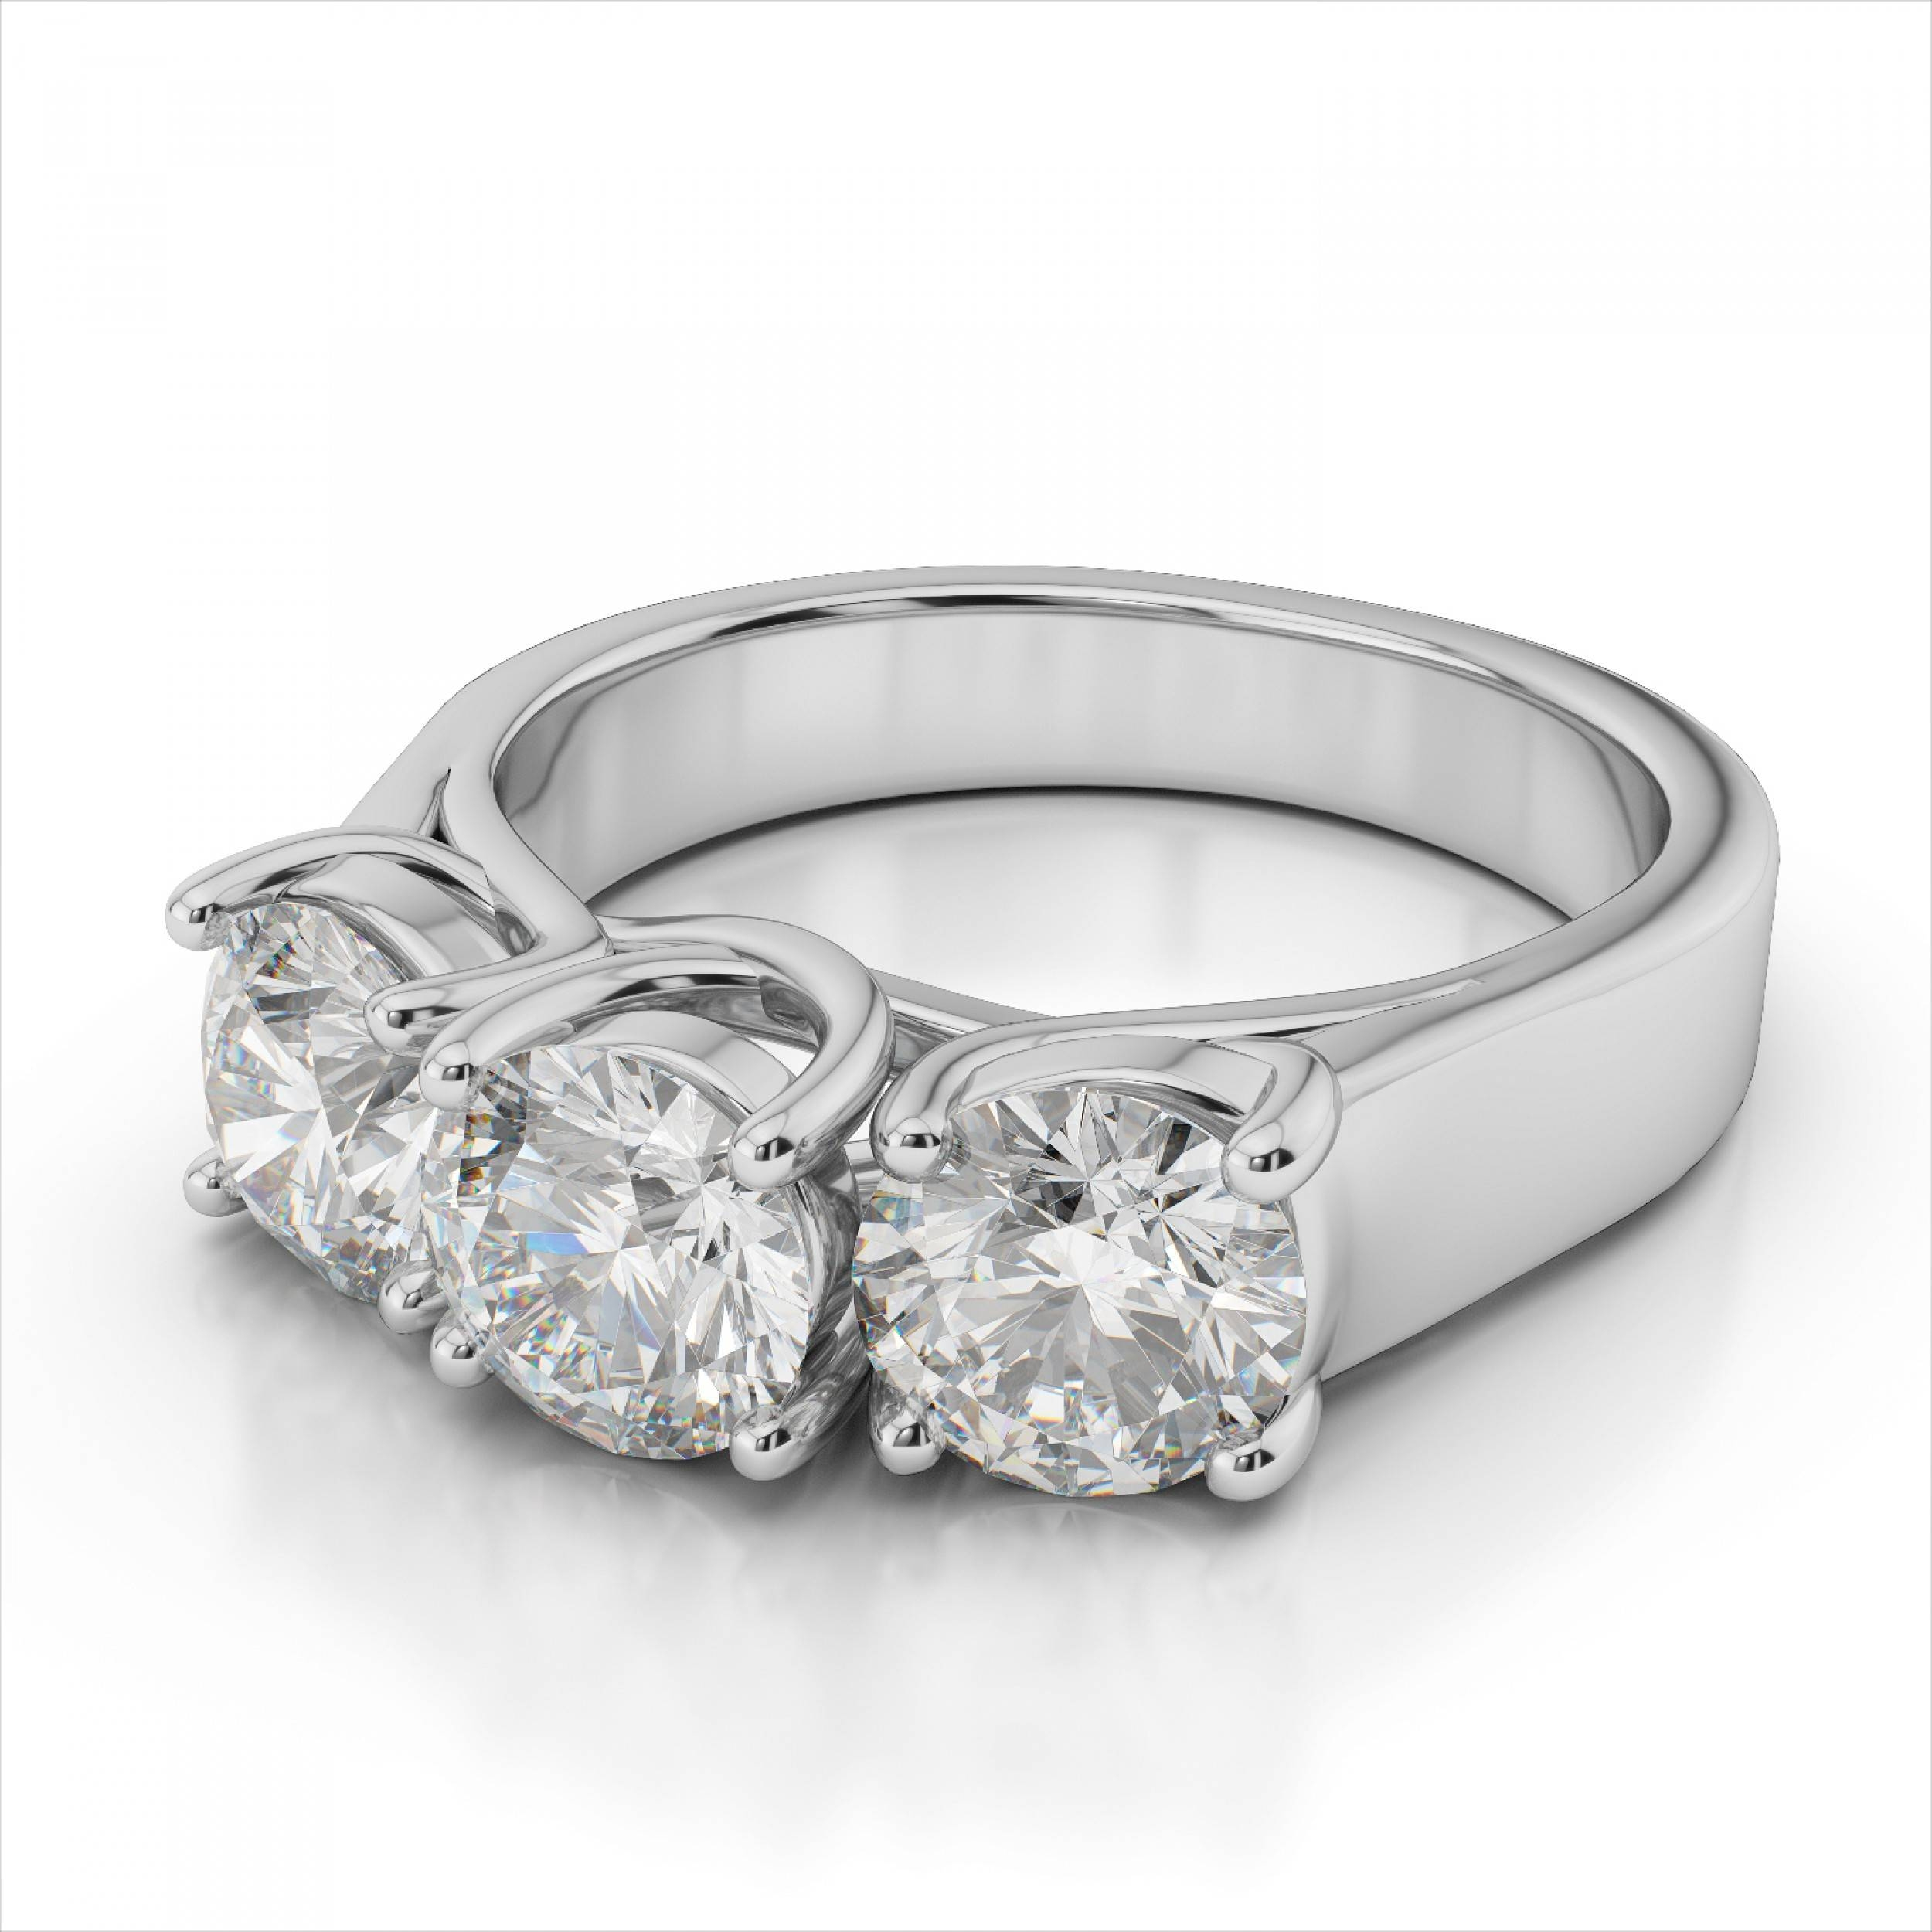 Wedding Rings : 3 Stone Engagement Rings With Side Stones 3 Stone With 3 Stone Platinum Engagement Rings (View 13 of 15)